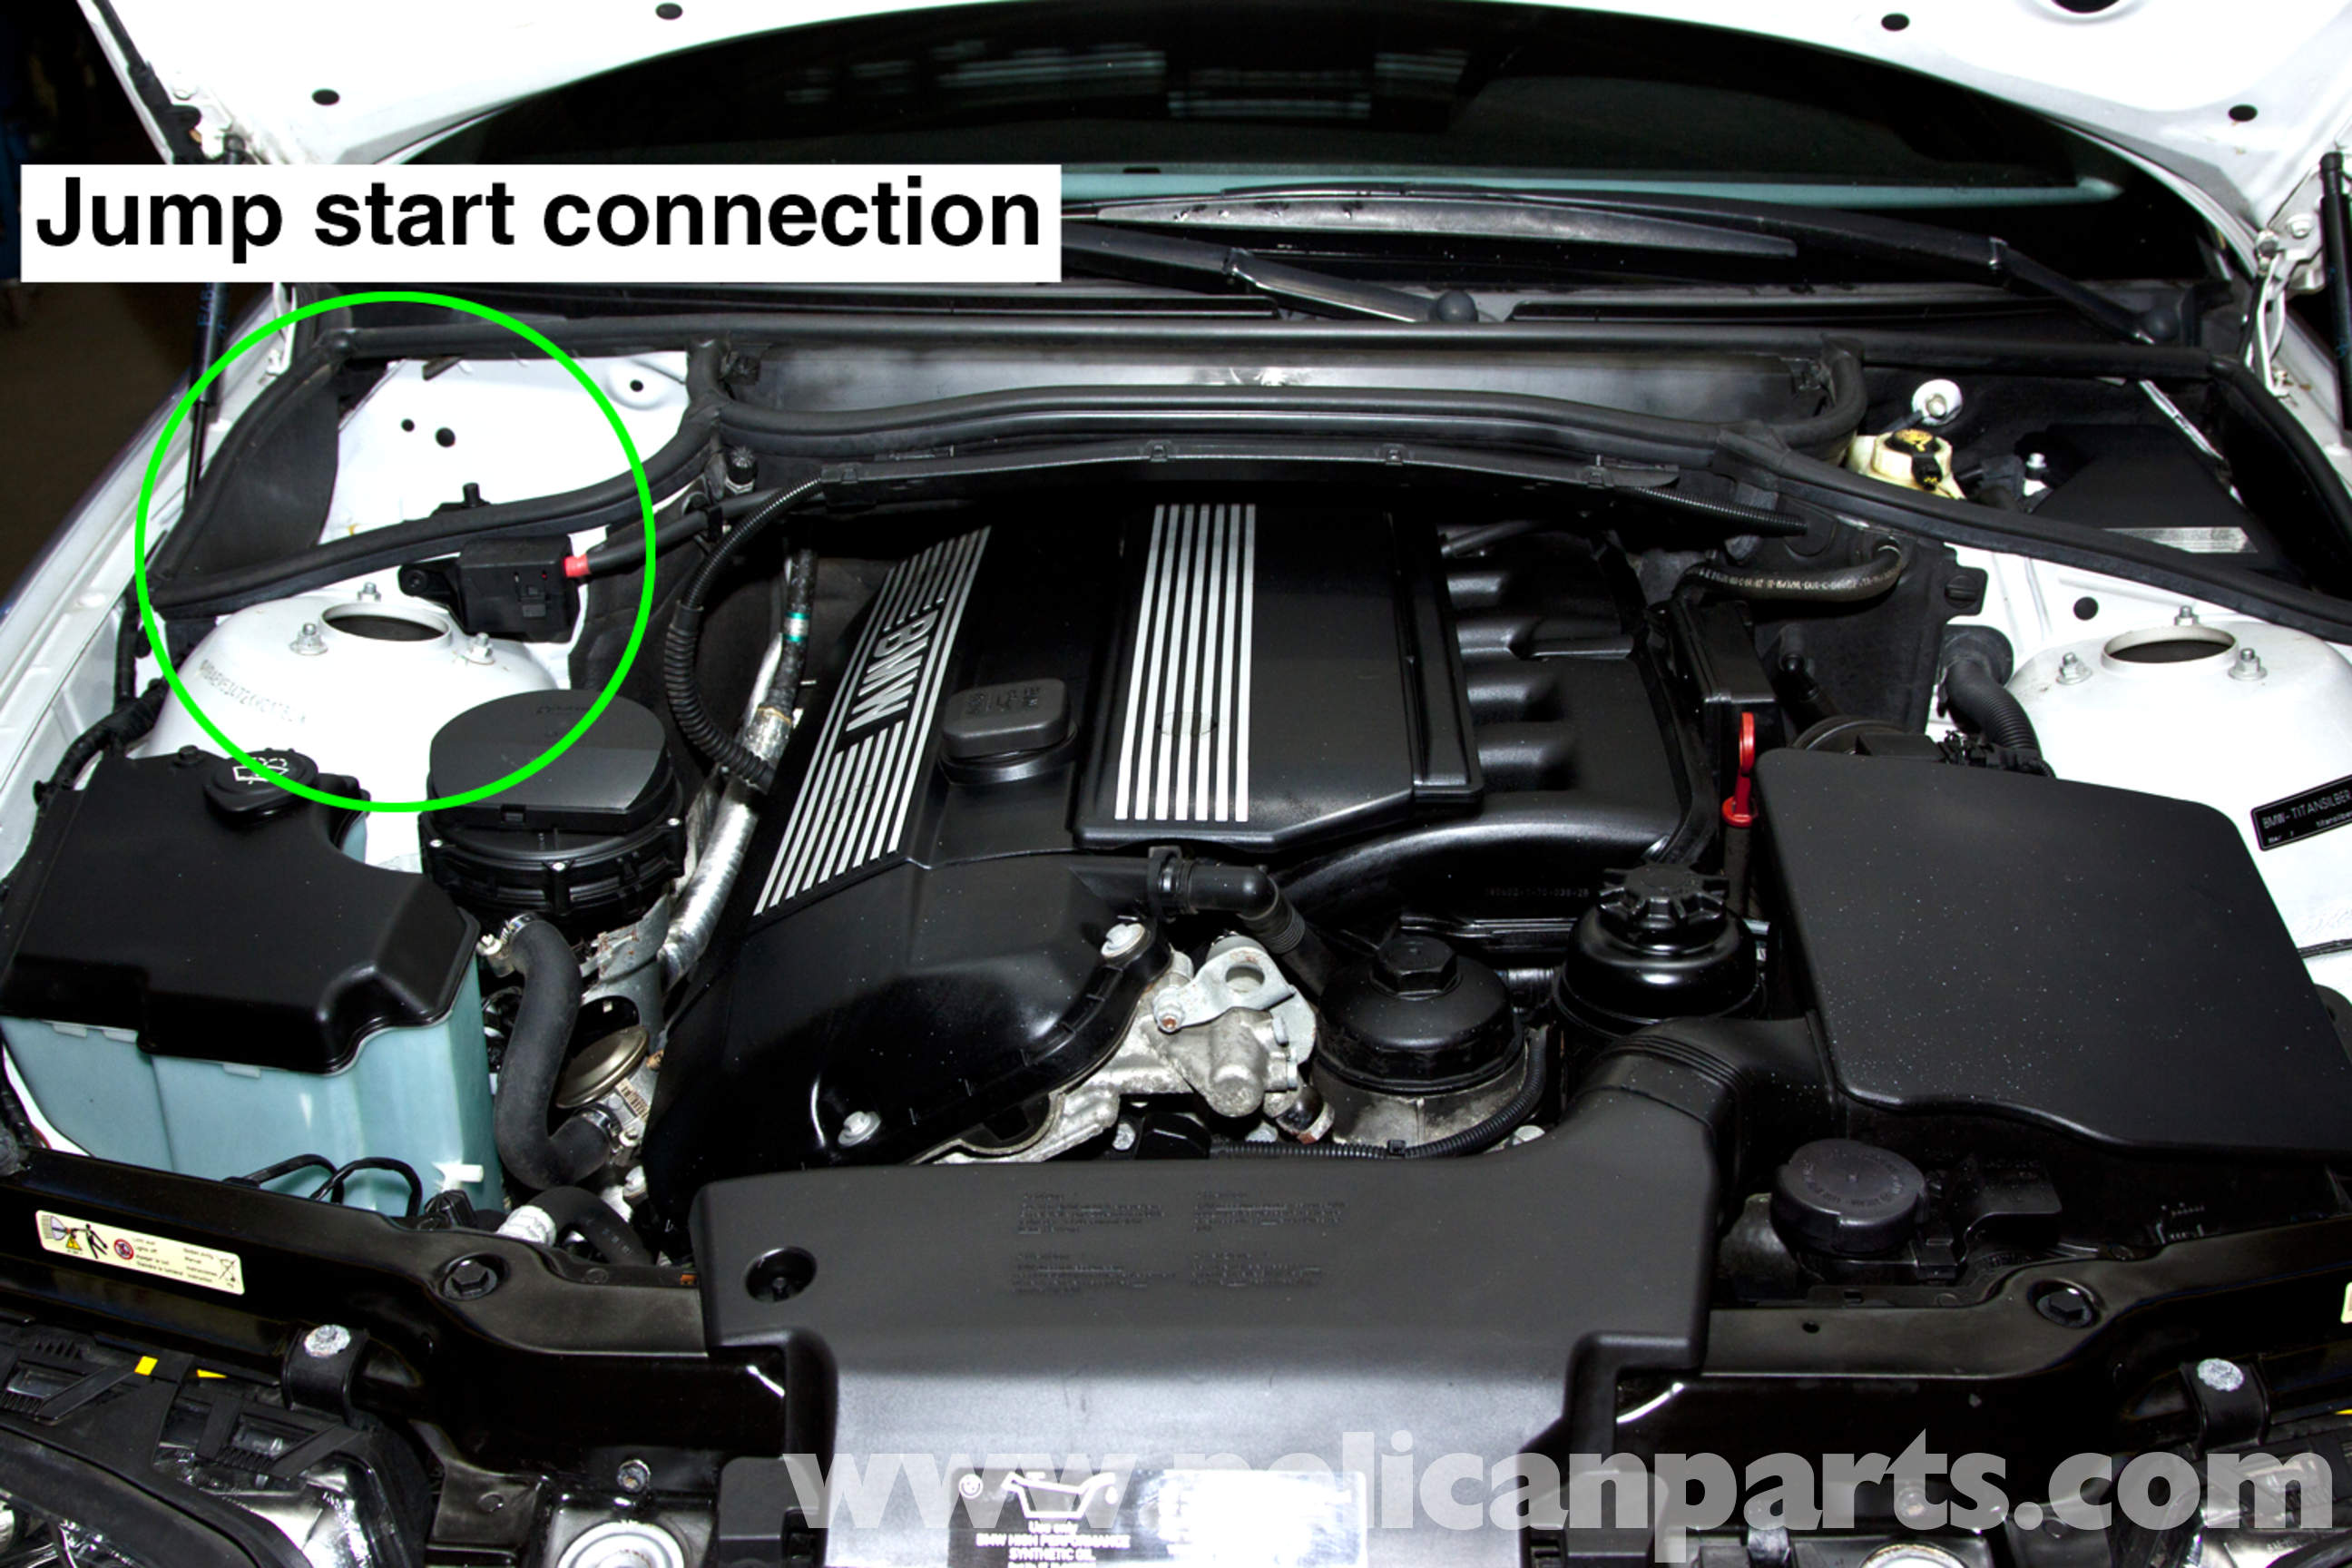 Eclipse Fuse Box Diagram Wiring Schematic Bmw E46 Battery Replacement And Connection Notes Bmw 325i